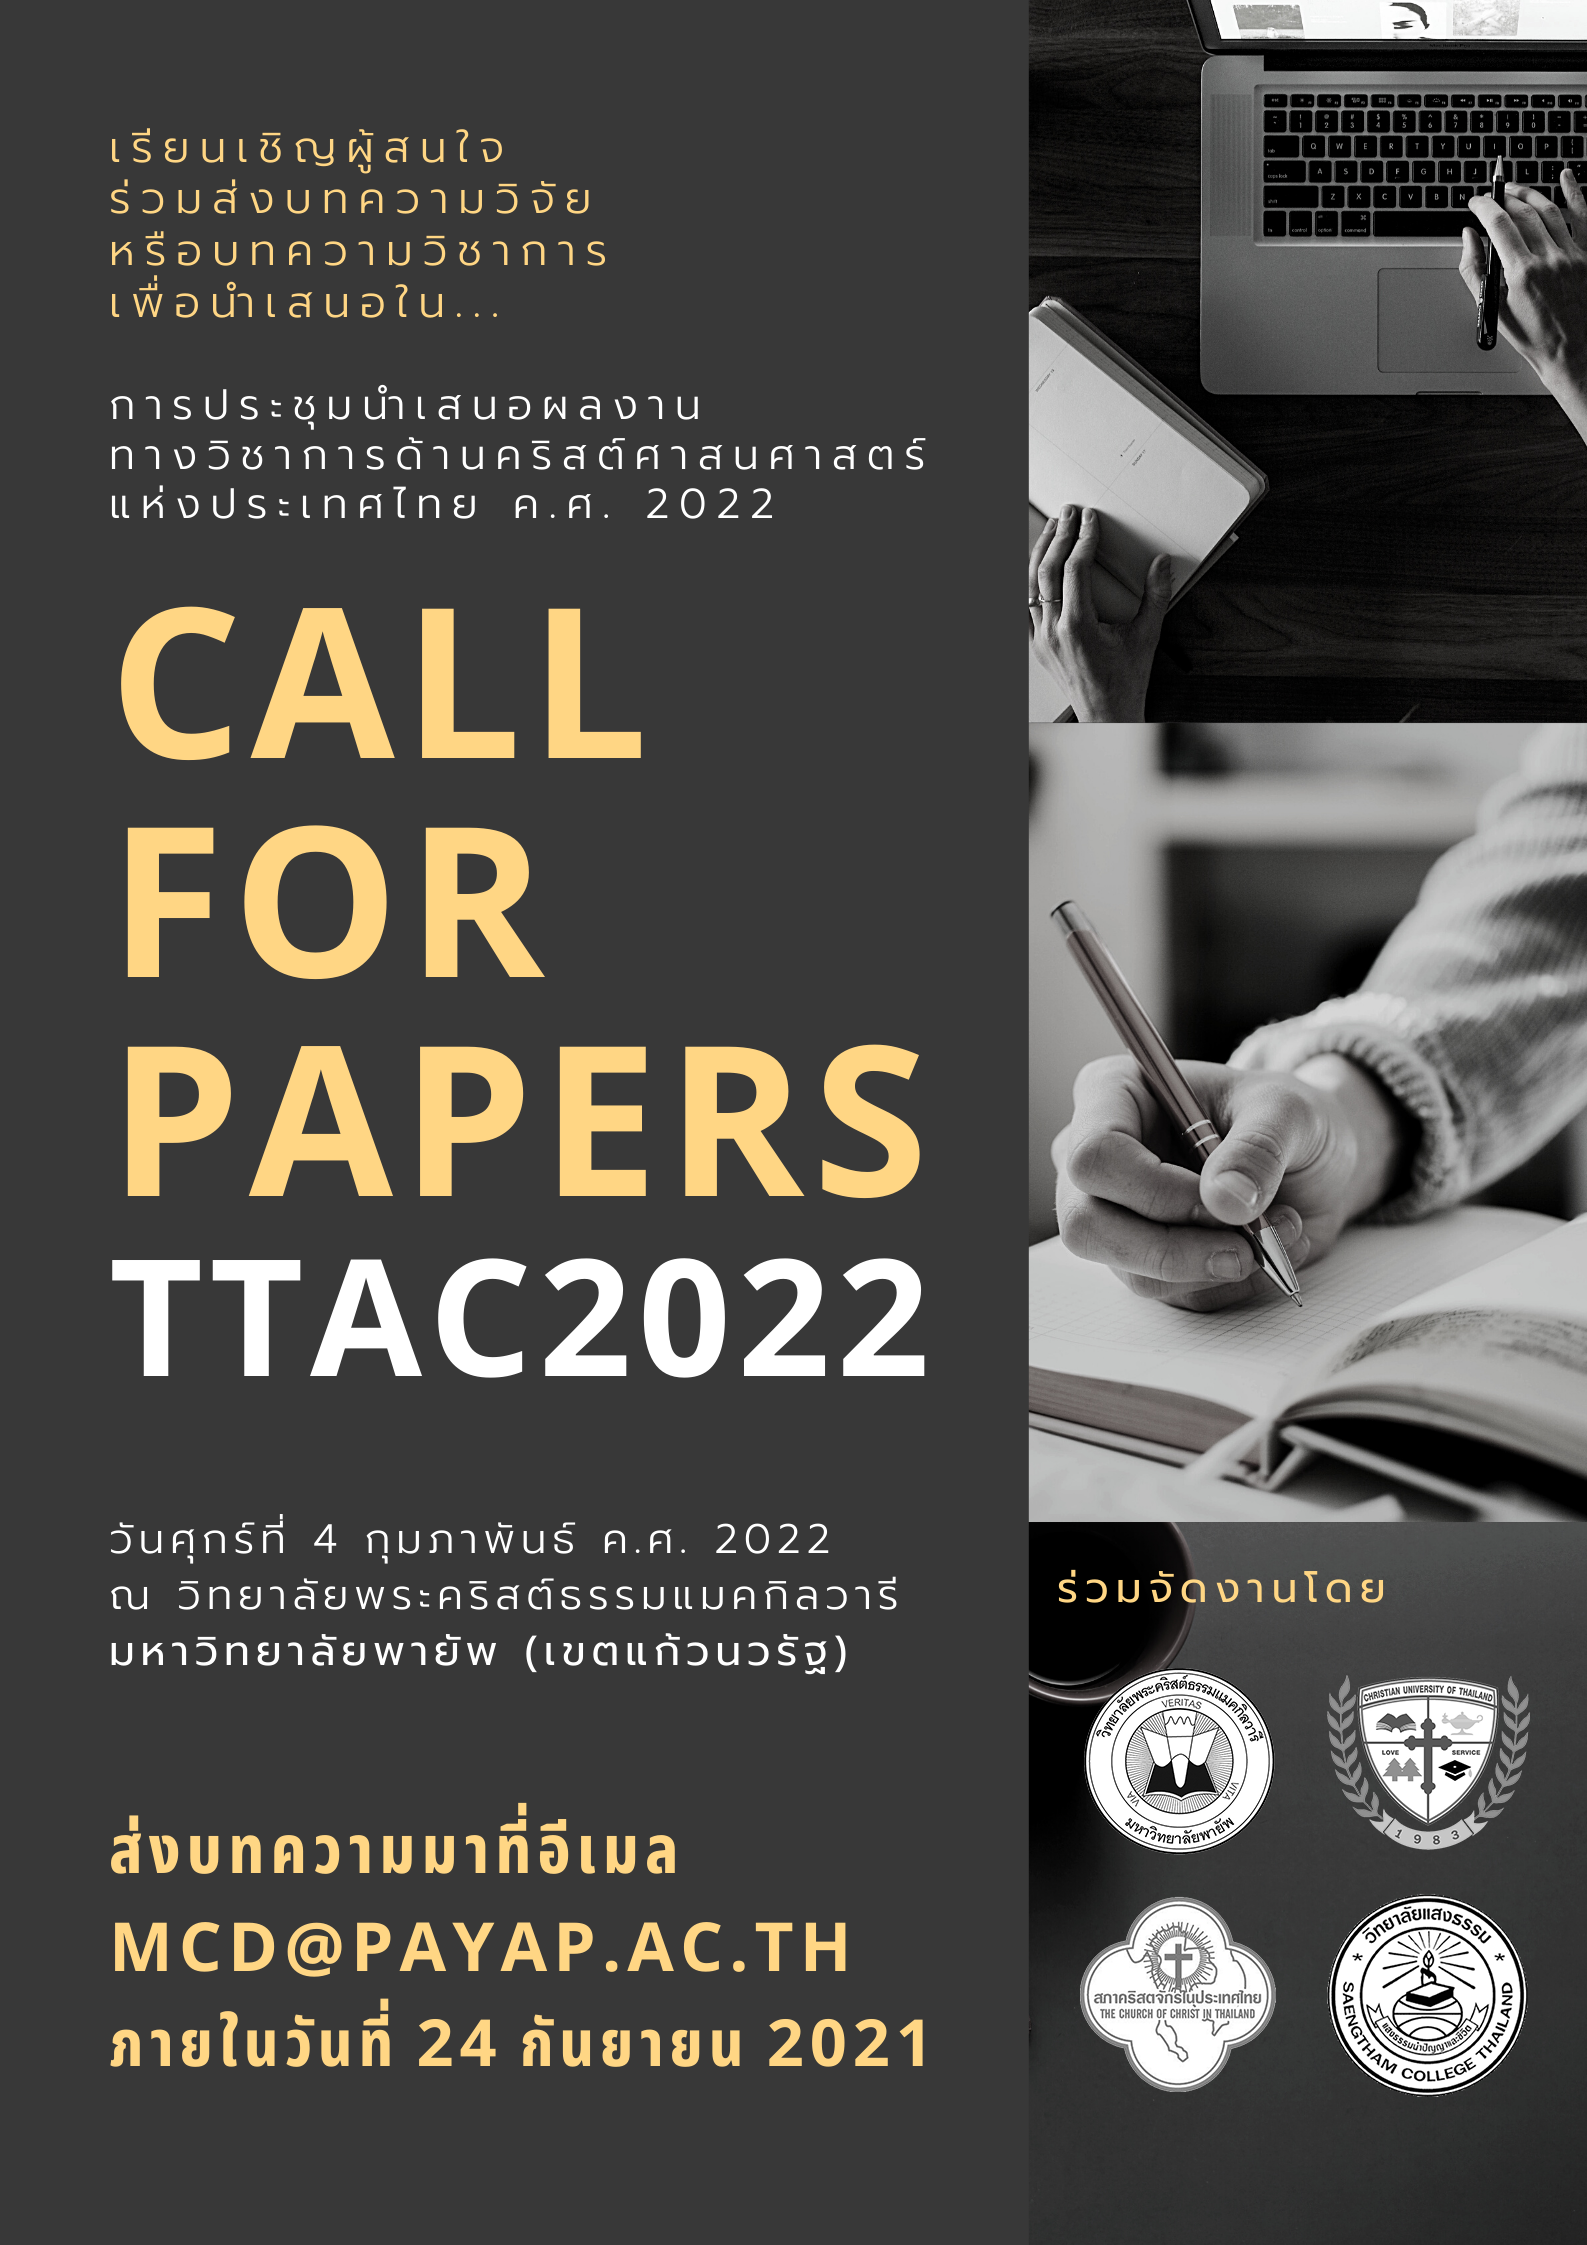 call-for-papers-ttac20222